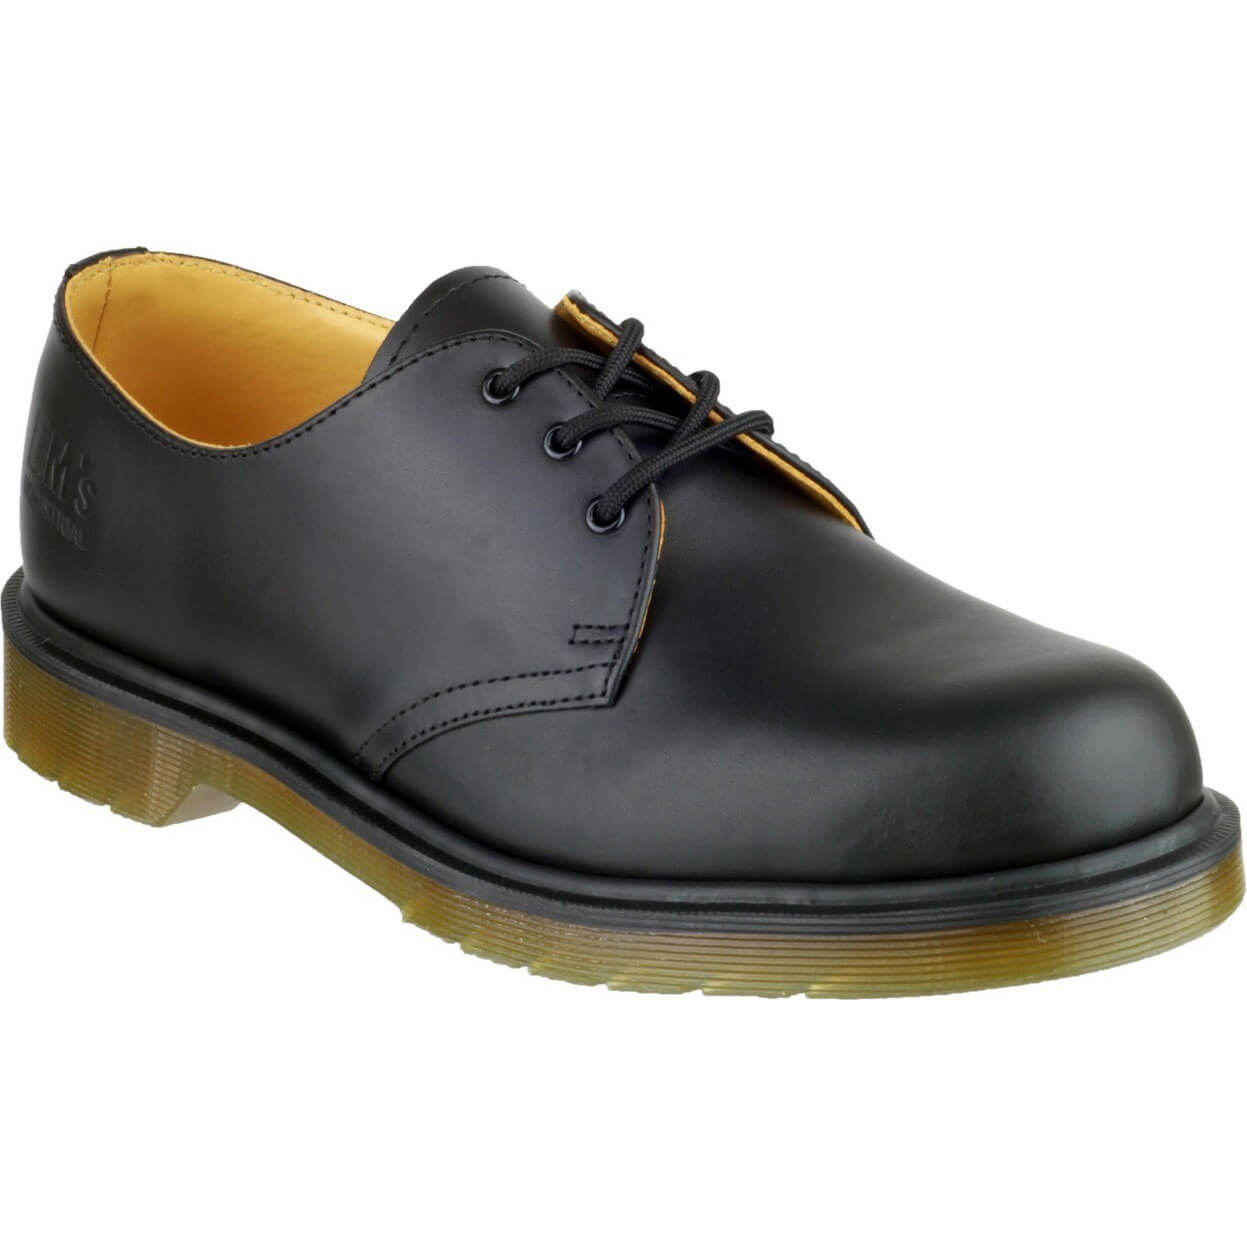 Image of Dr Martens B8249 Lace-Up Leather Shoe Black Size 11